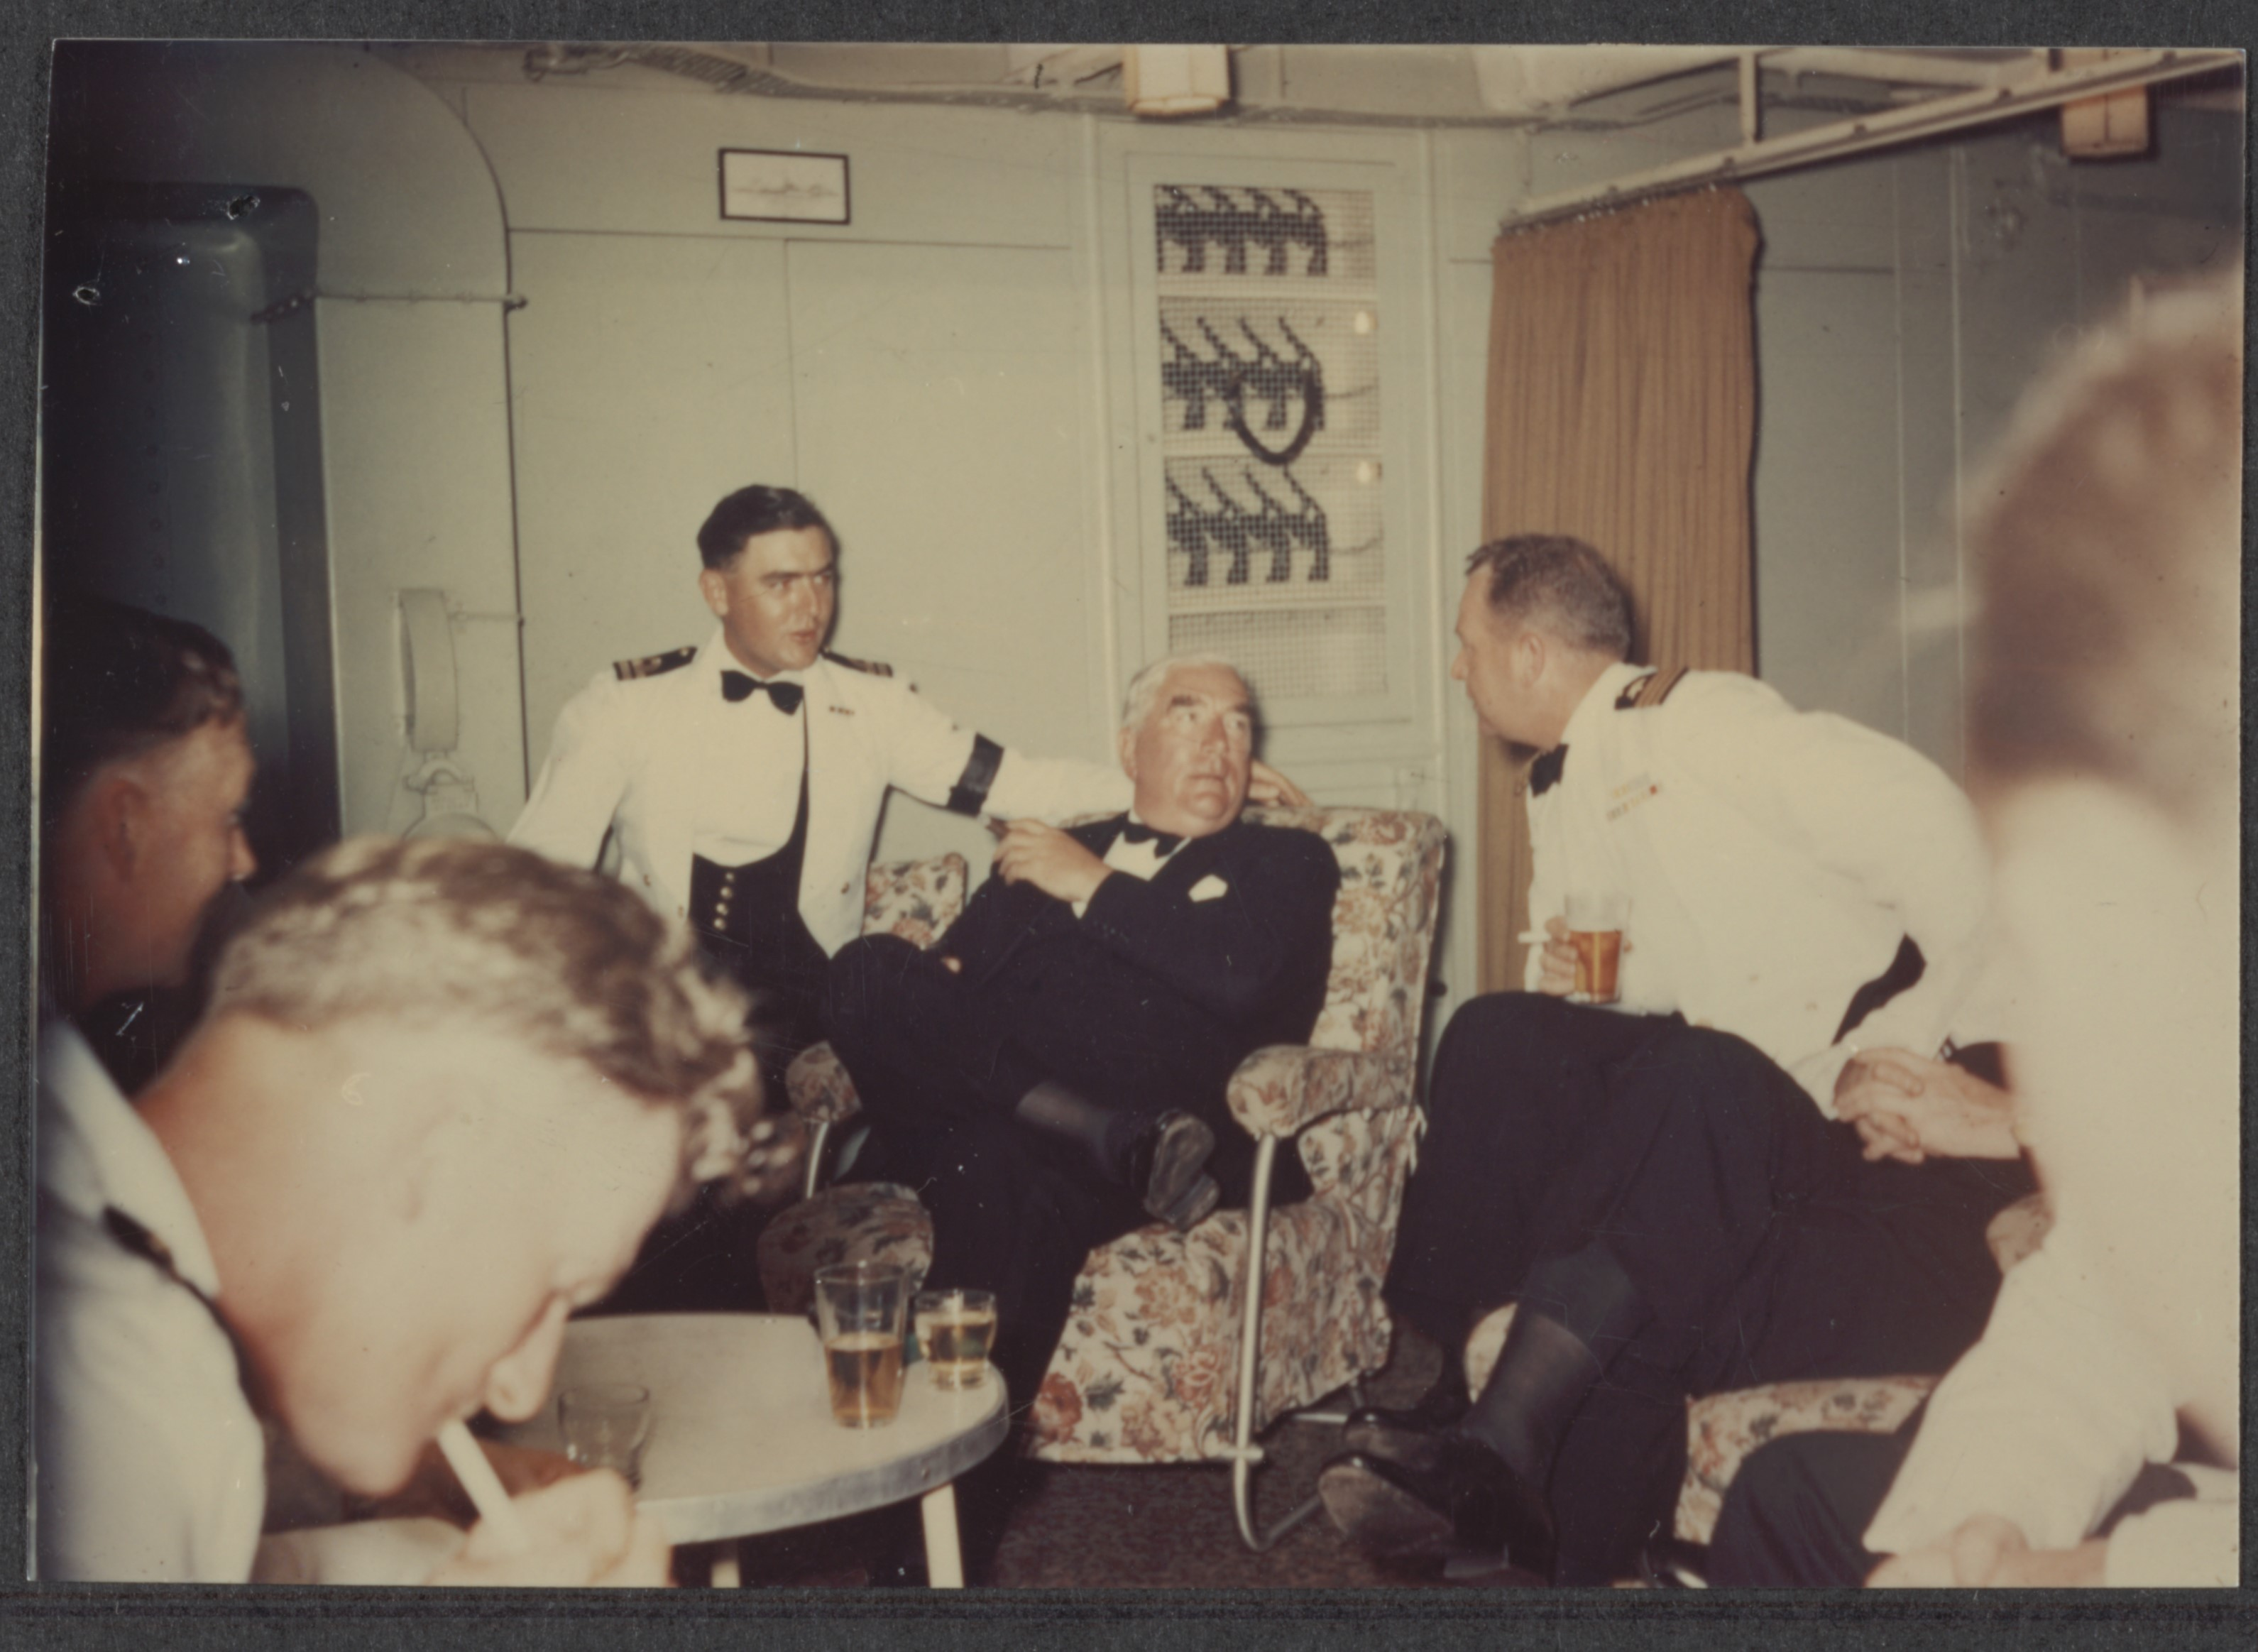 Sir Robert Menzies socialising with crew on a ship